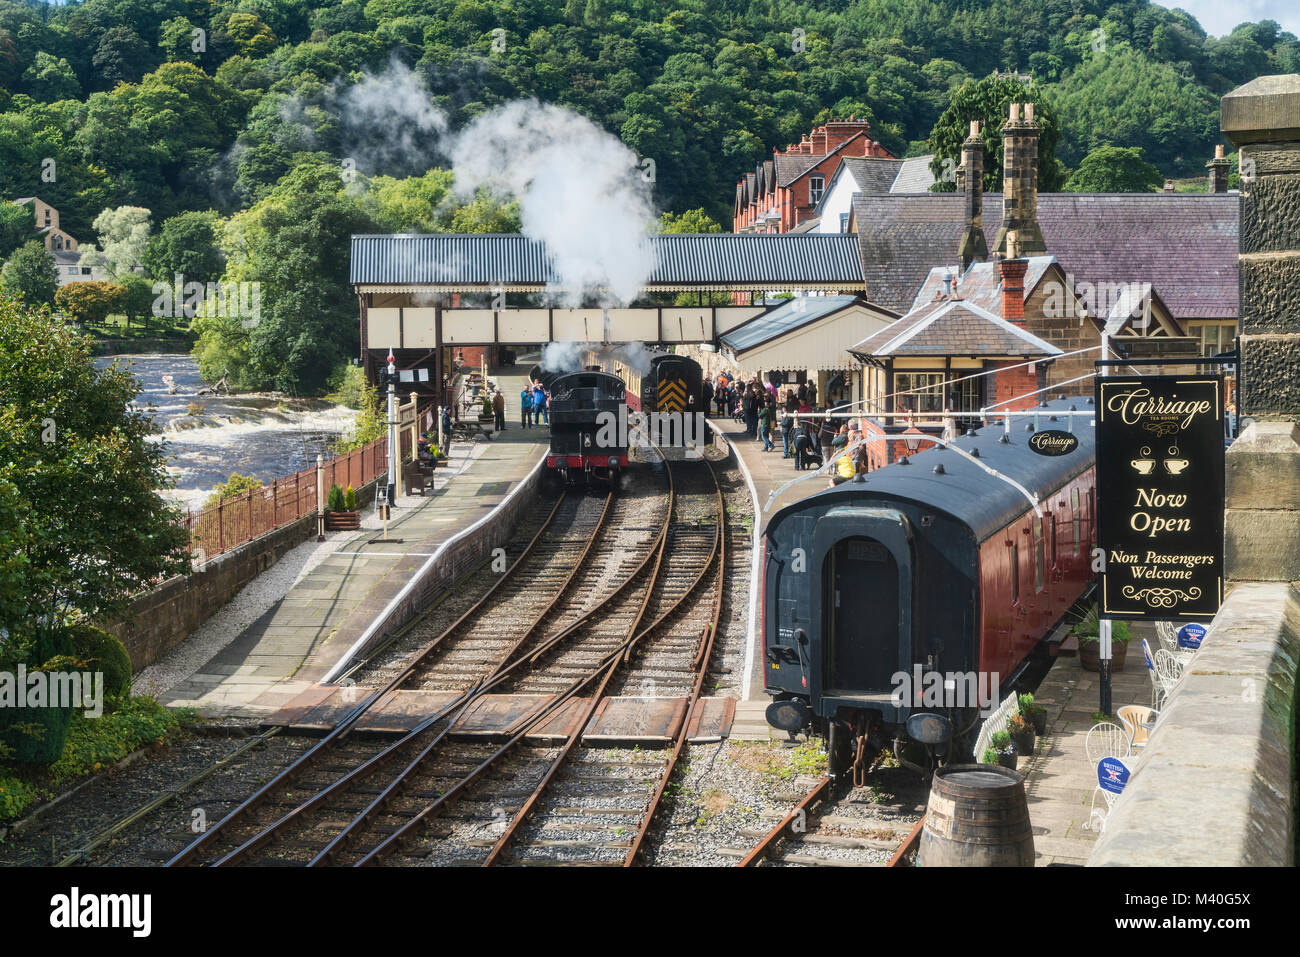 Llangollen Railway Station and River Dee, Denbighshire, Wales, UK Stock Photo